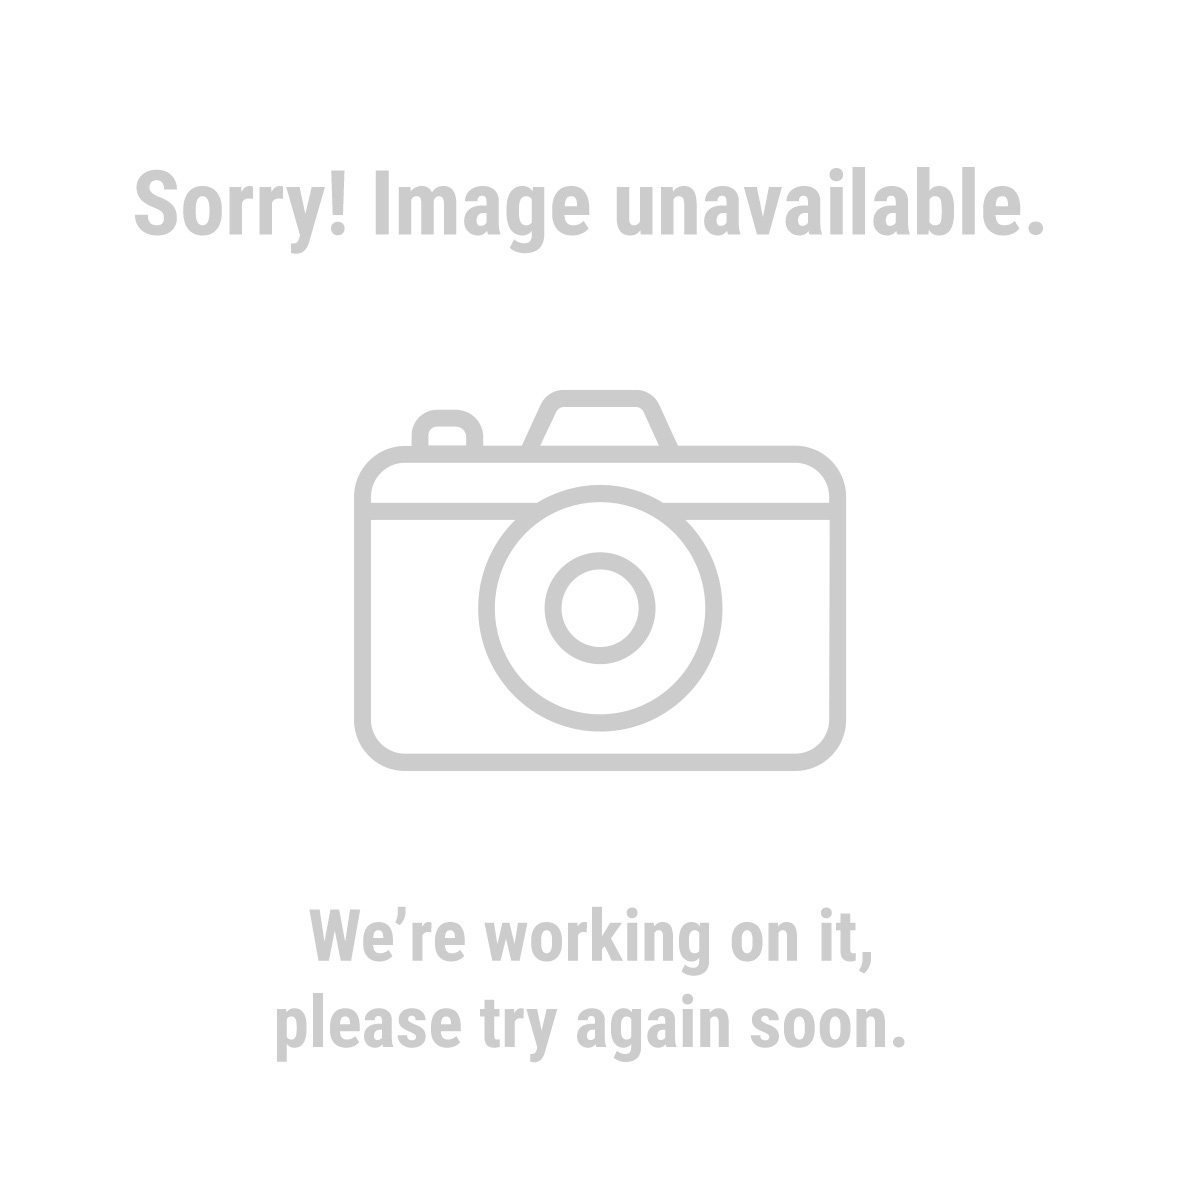 Drill Master 61420 10 in. Random Orbit Polisher / Waxer